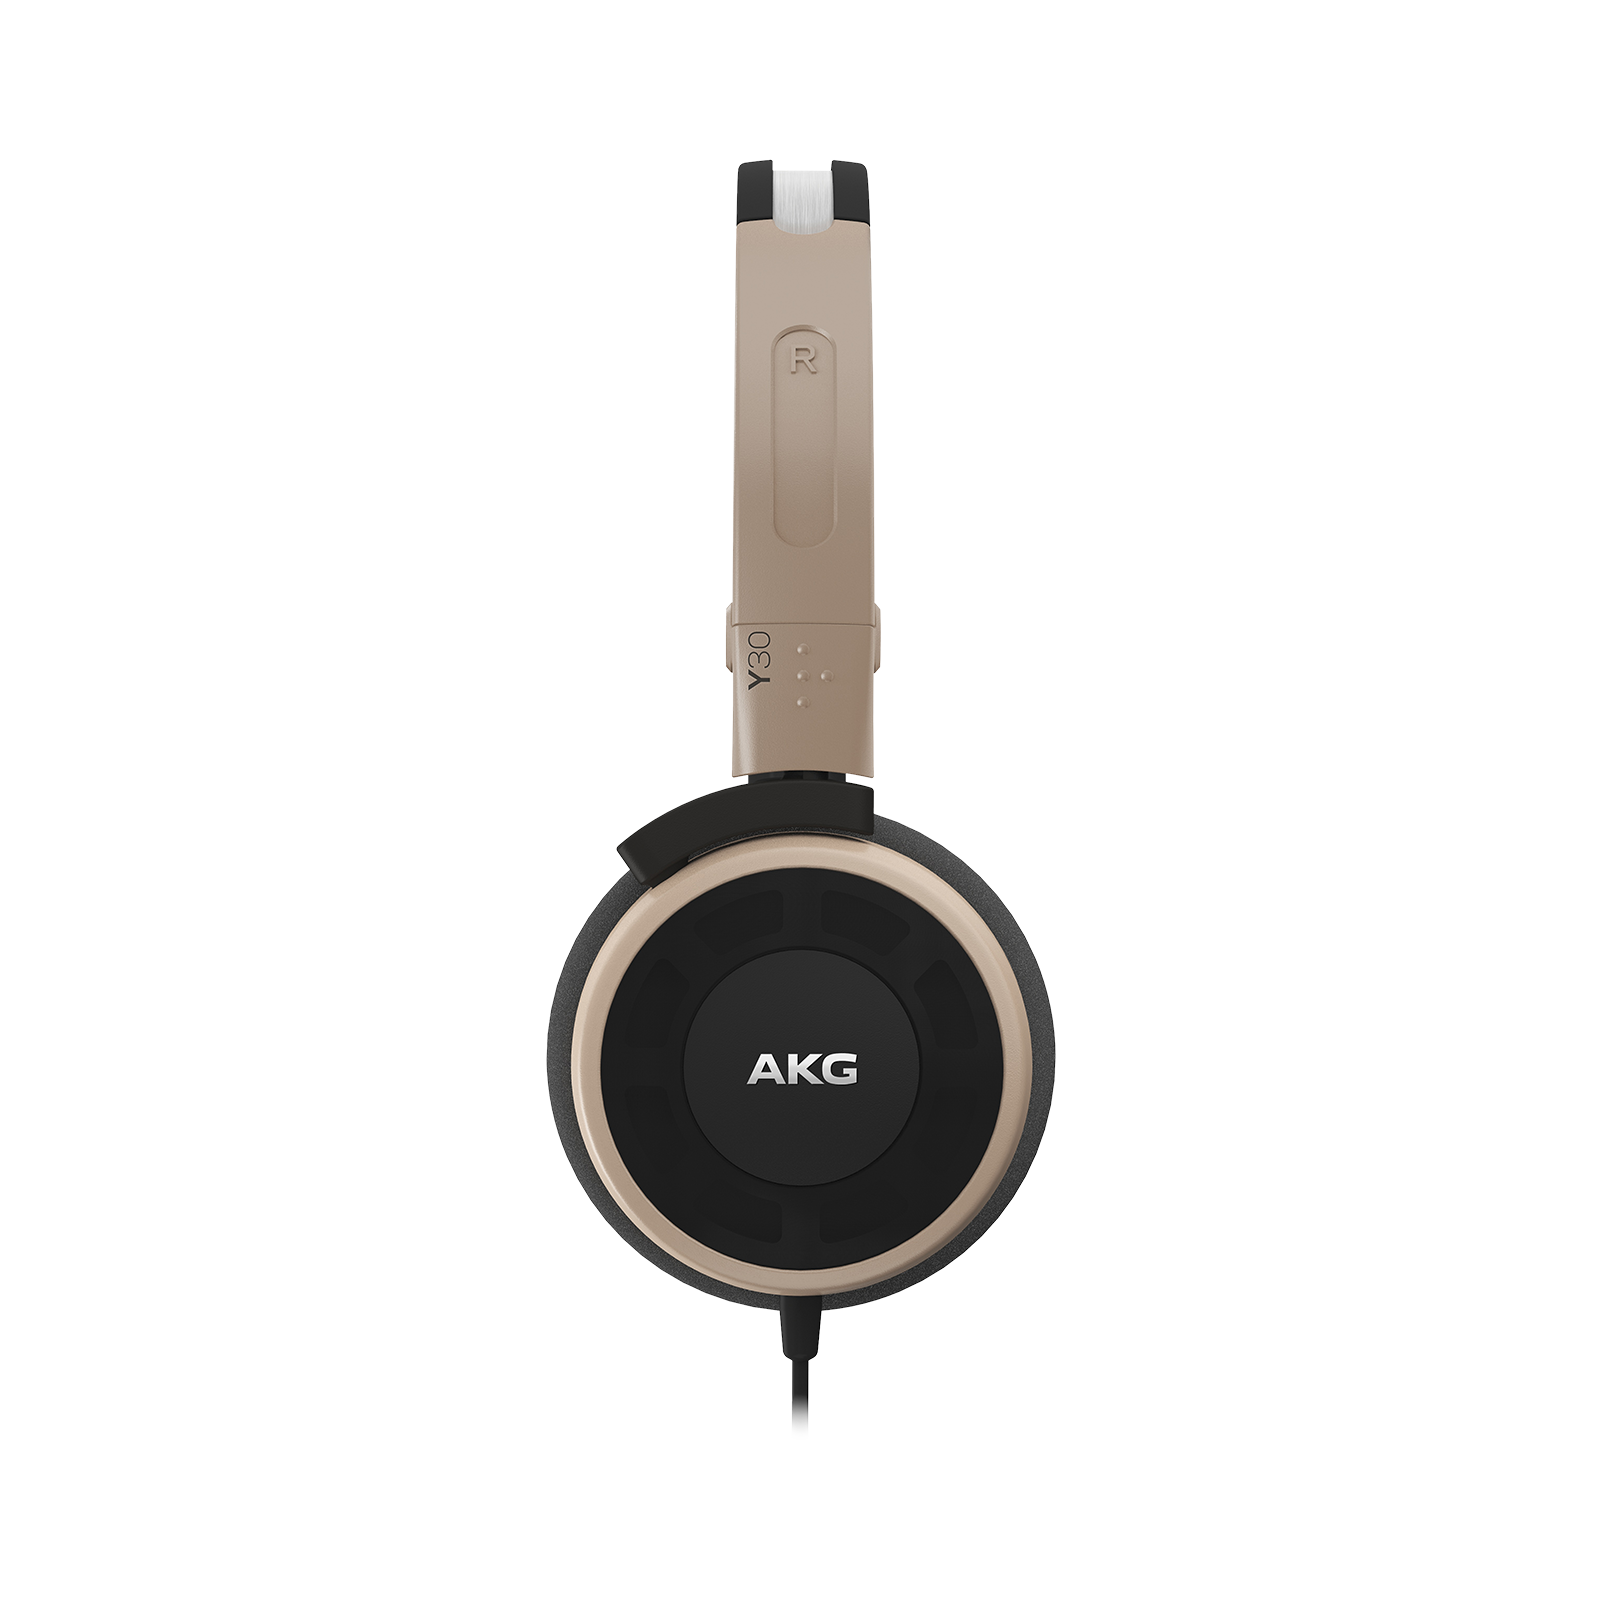 Y 30 - Brown - Stylish, uncomplicated, foldable headphones with 1 button universal remote/mic - Detailshot 1